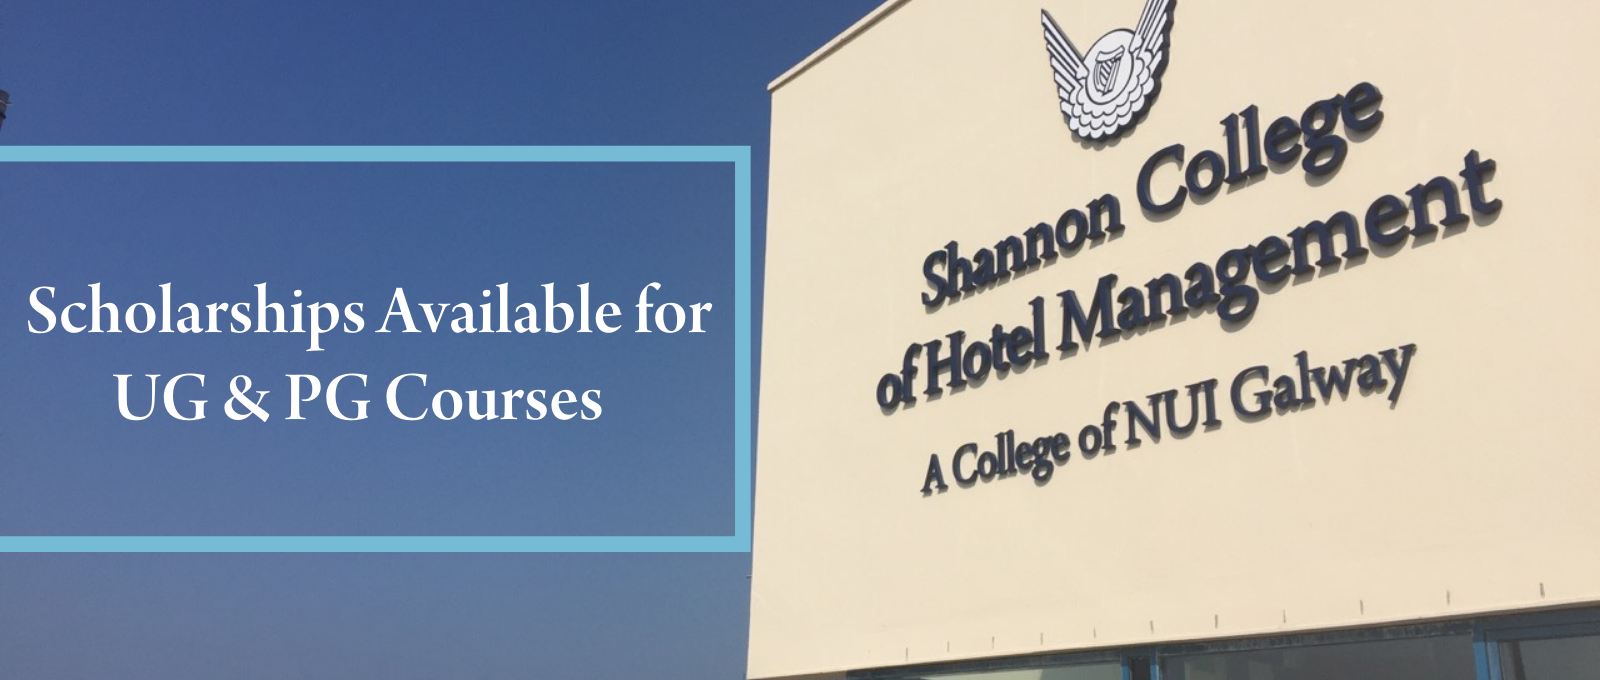 Shannon College Scholarships